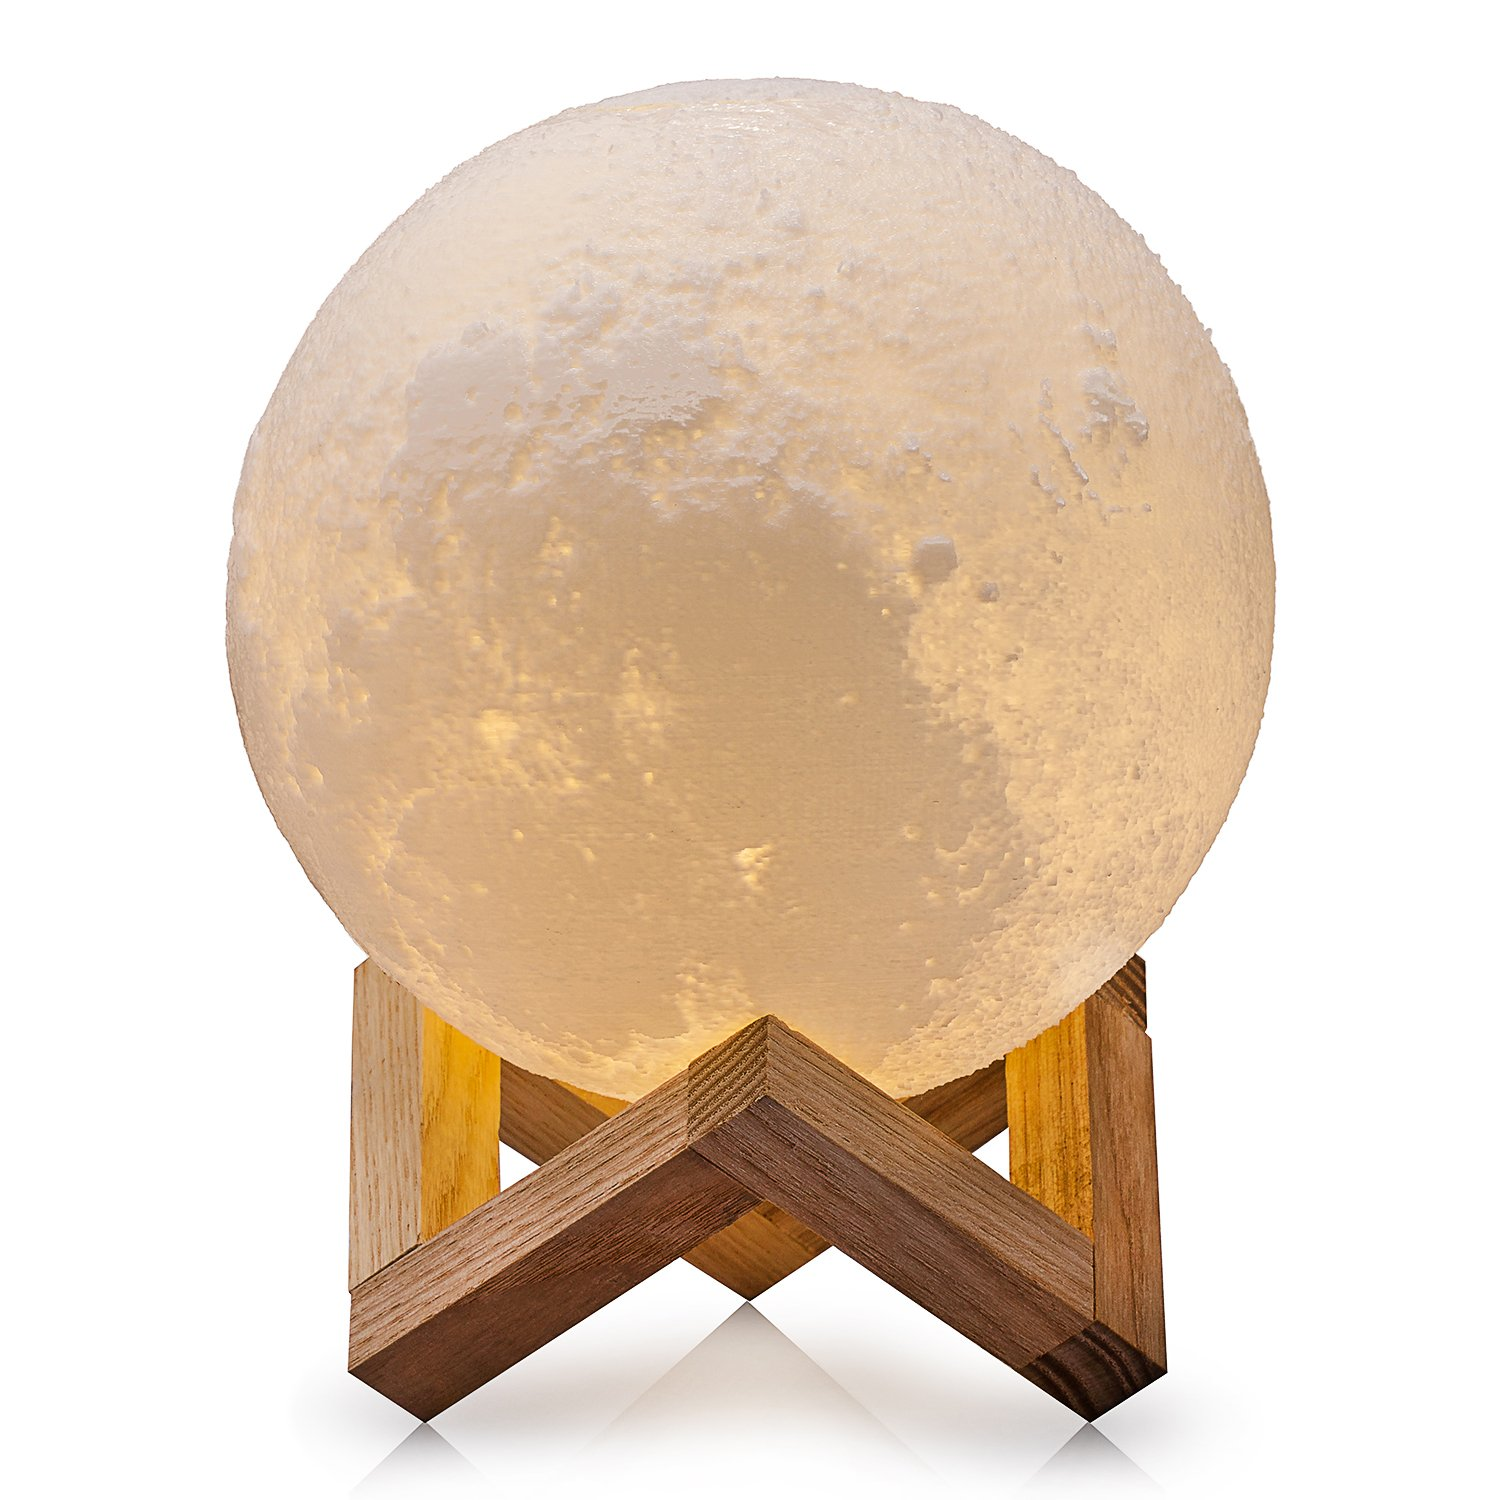 CPLA Lighting Night Light LED 3D Printing Moon Lamp, Warm and Cool White Dimmable Touch Control Brightness 3000K/6000K with USB Charging, Rechargeable Home Decorative Light